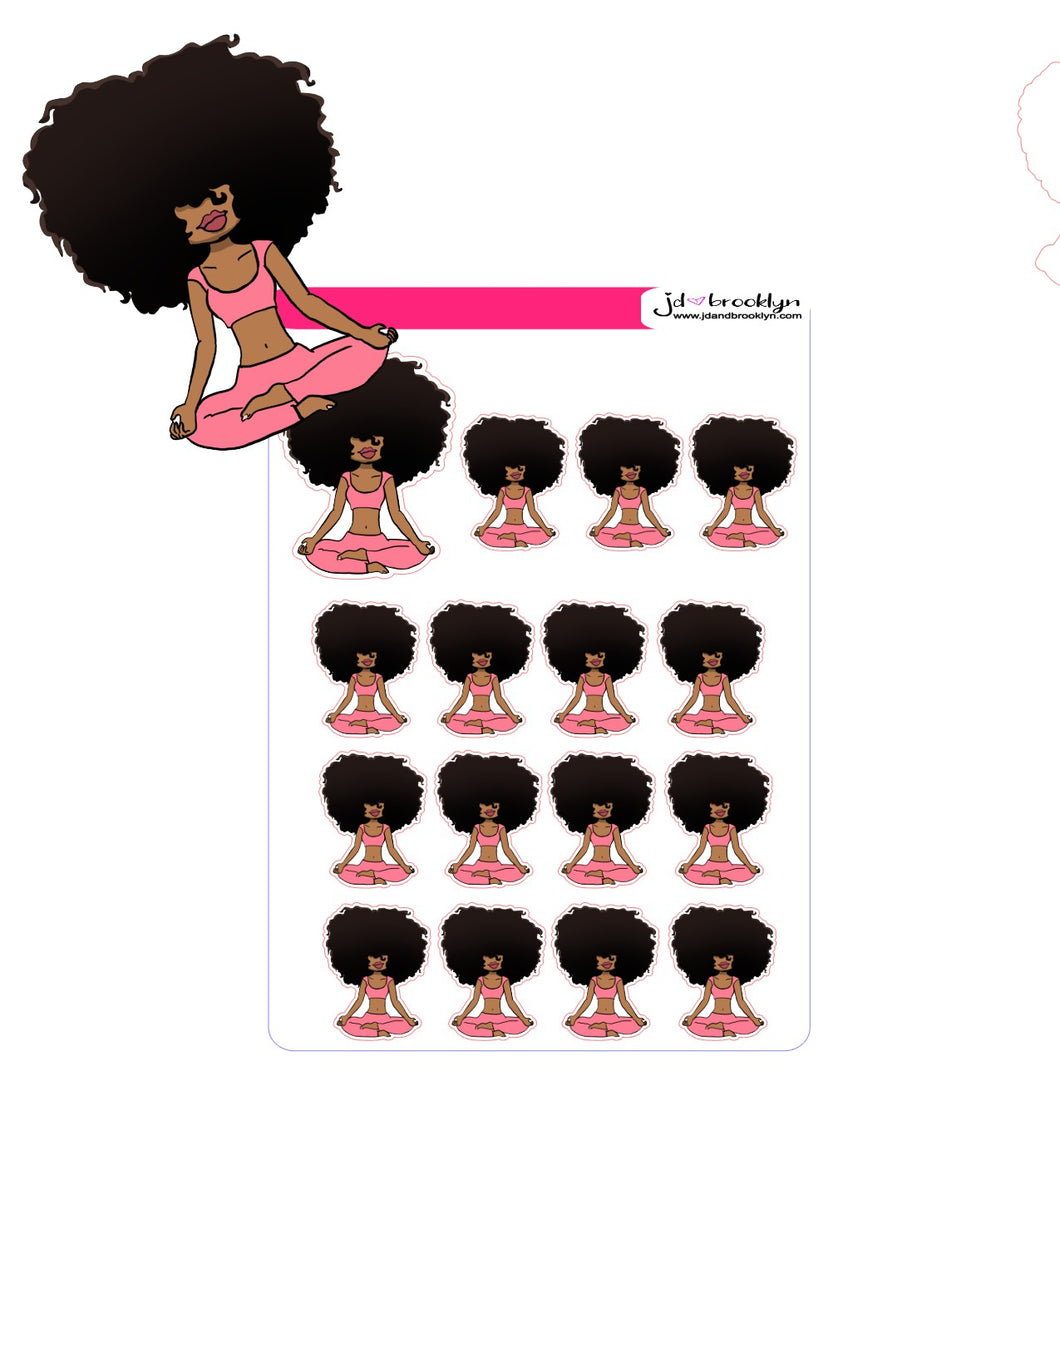 Big Hair Doll Series 2: Yoga/Meditating Doll Sticker sheet or die cuts